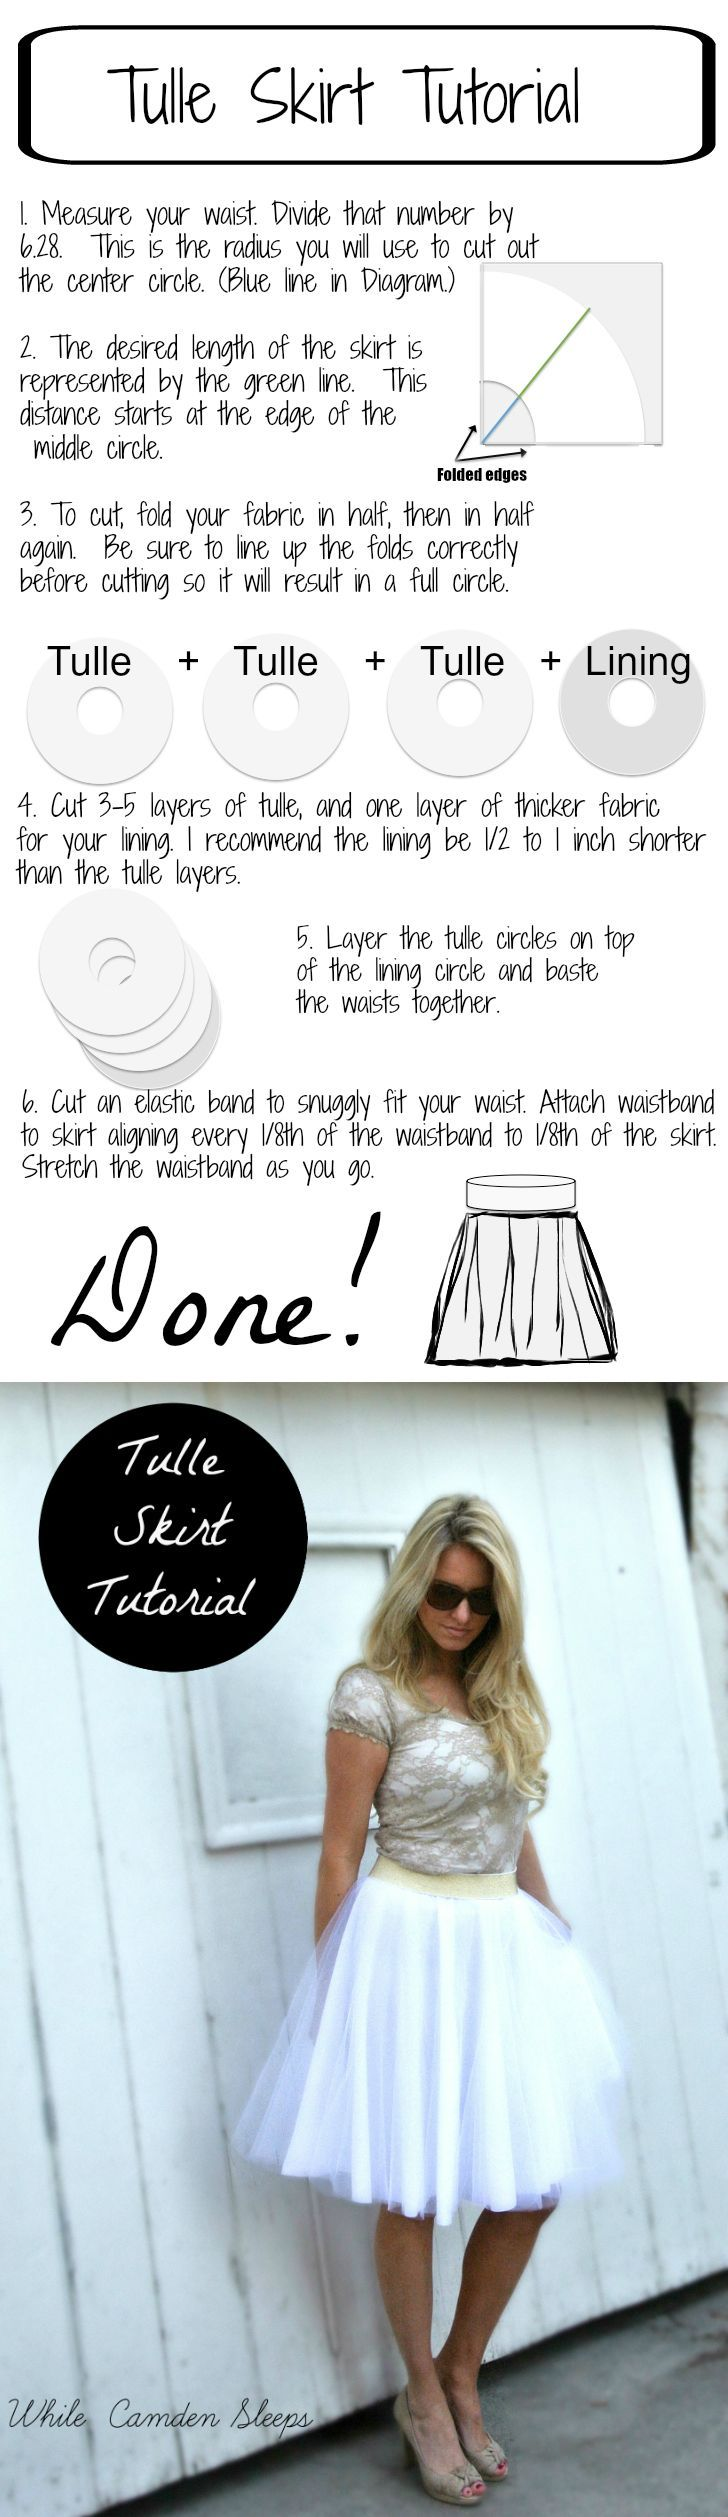 """The Lazy, or """"efficient"""" way to make a diy tulle skirt:"""